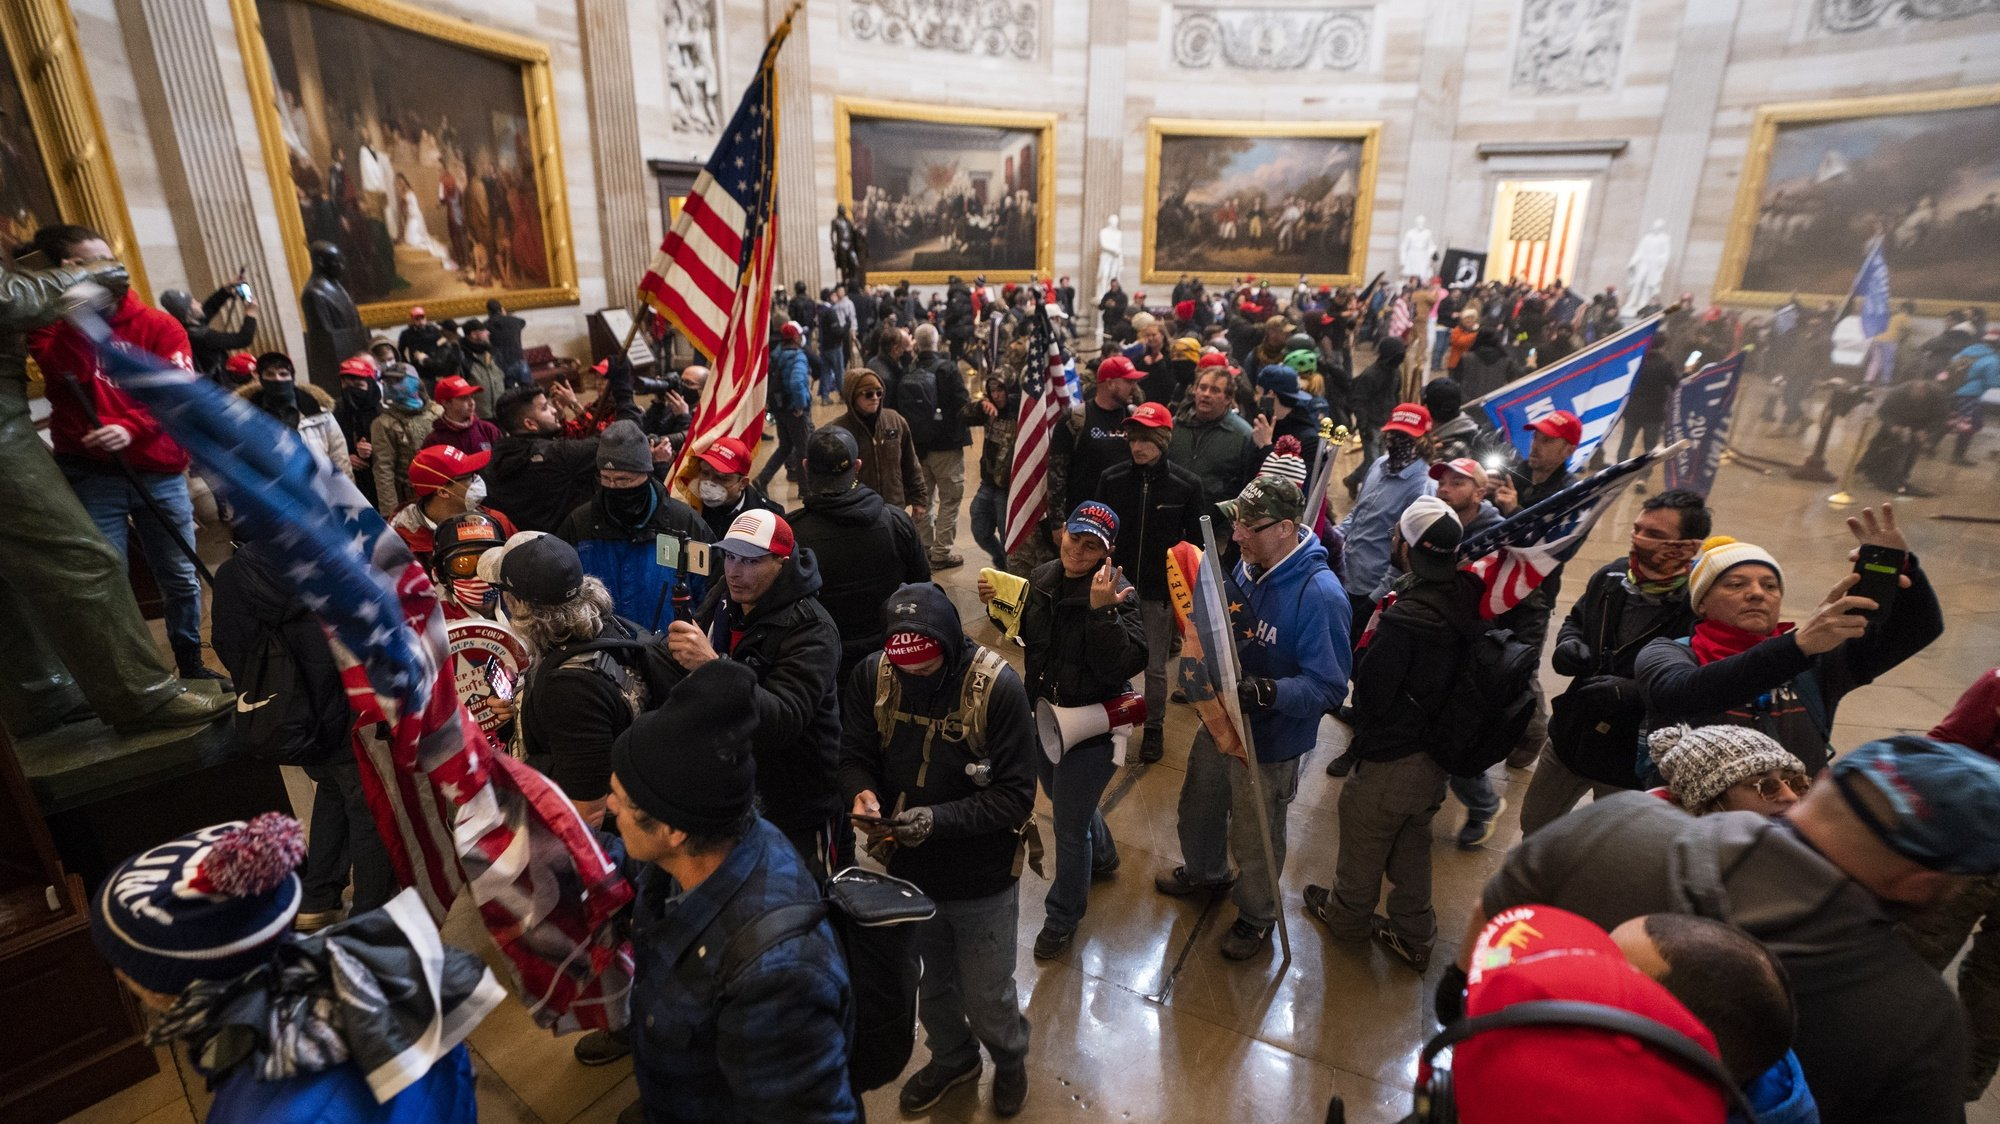 epa08923423 Supporters of US President Donald J. Trump in the Capitol Rotunda after breaching Capitol security in Washington, DC, USA, 06 January 2021. Protesters entered the US Capitol where the Electoral College vote certification for President-elect Joe Biden took place.  EPA/JIM LO SCALZO